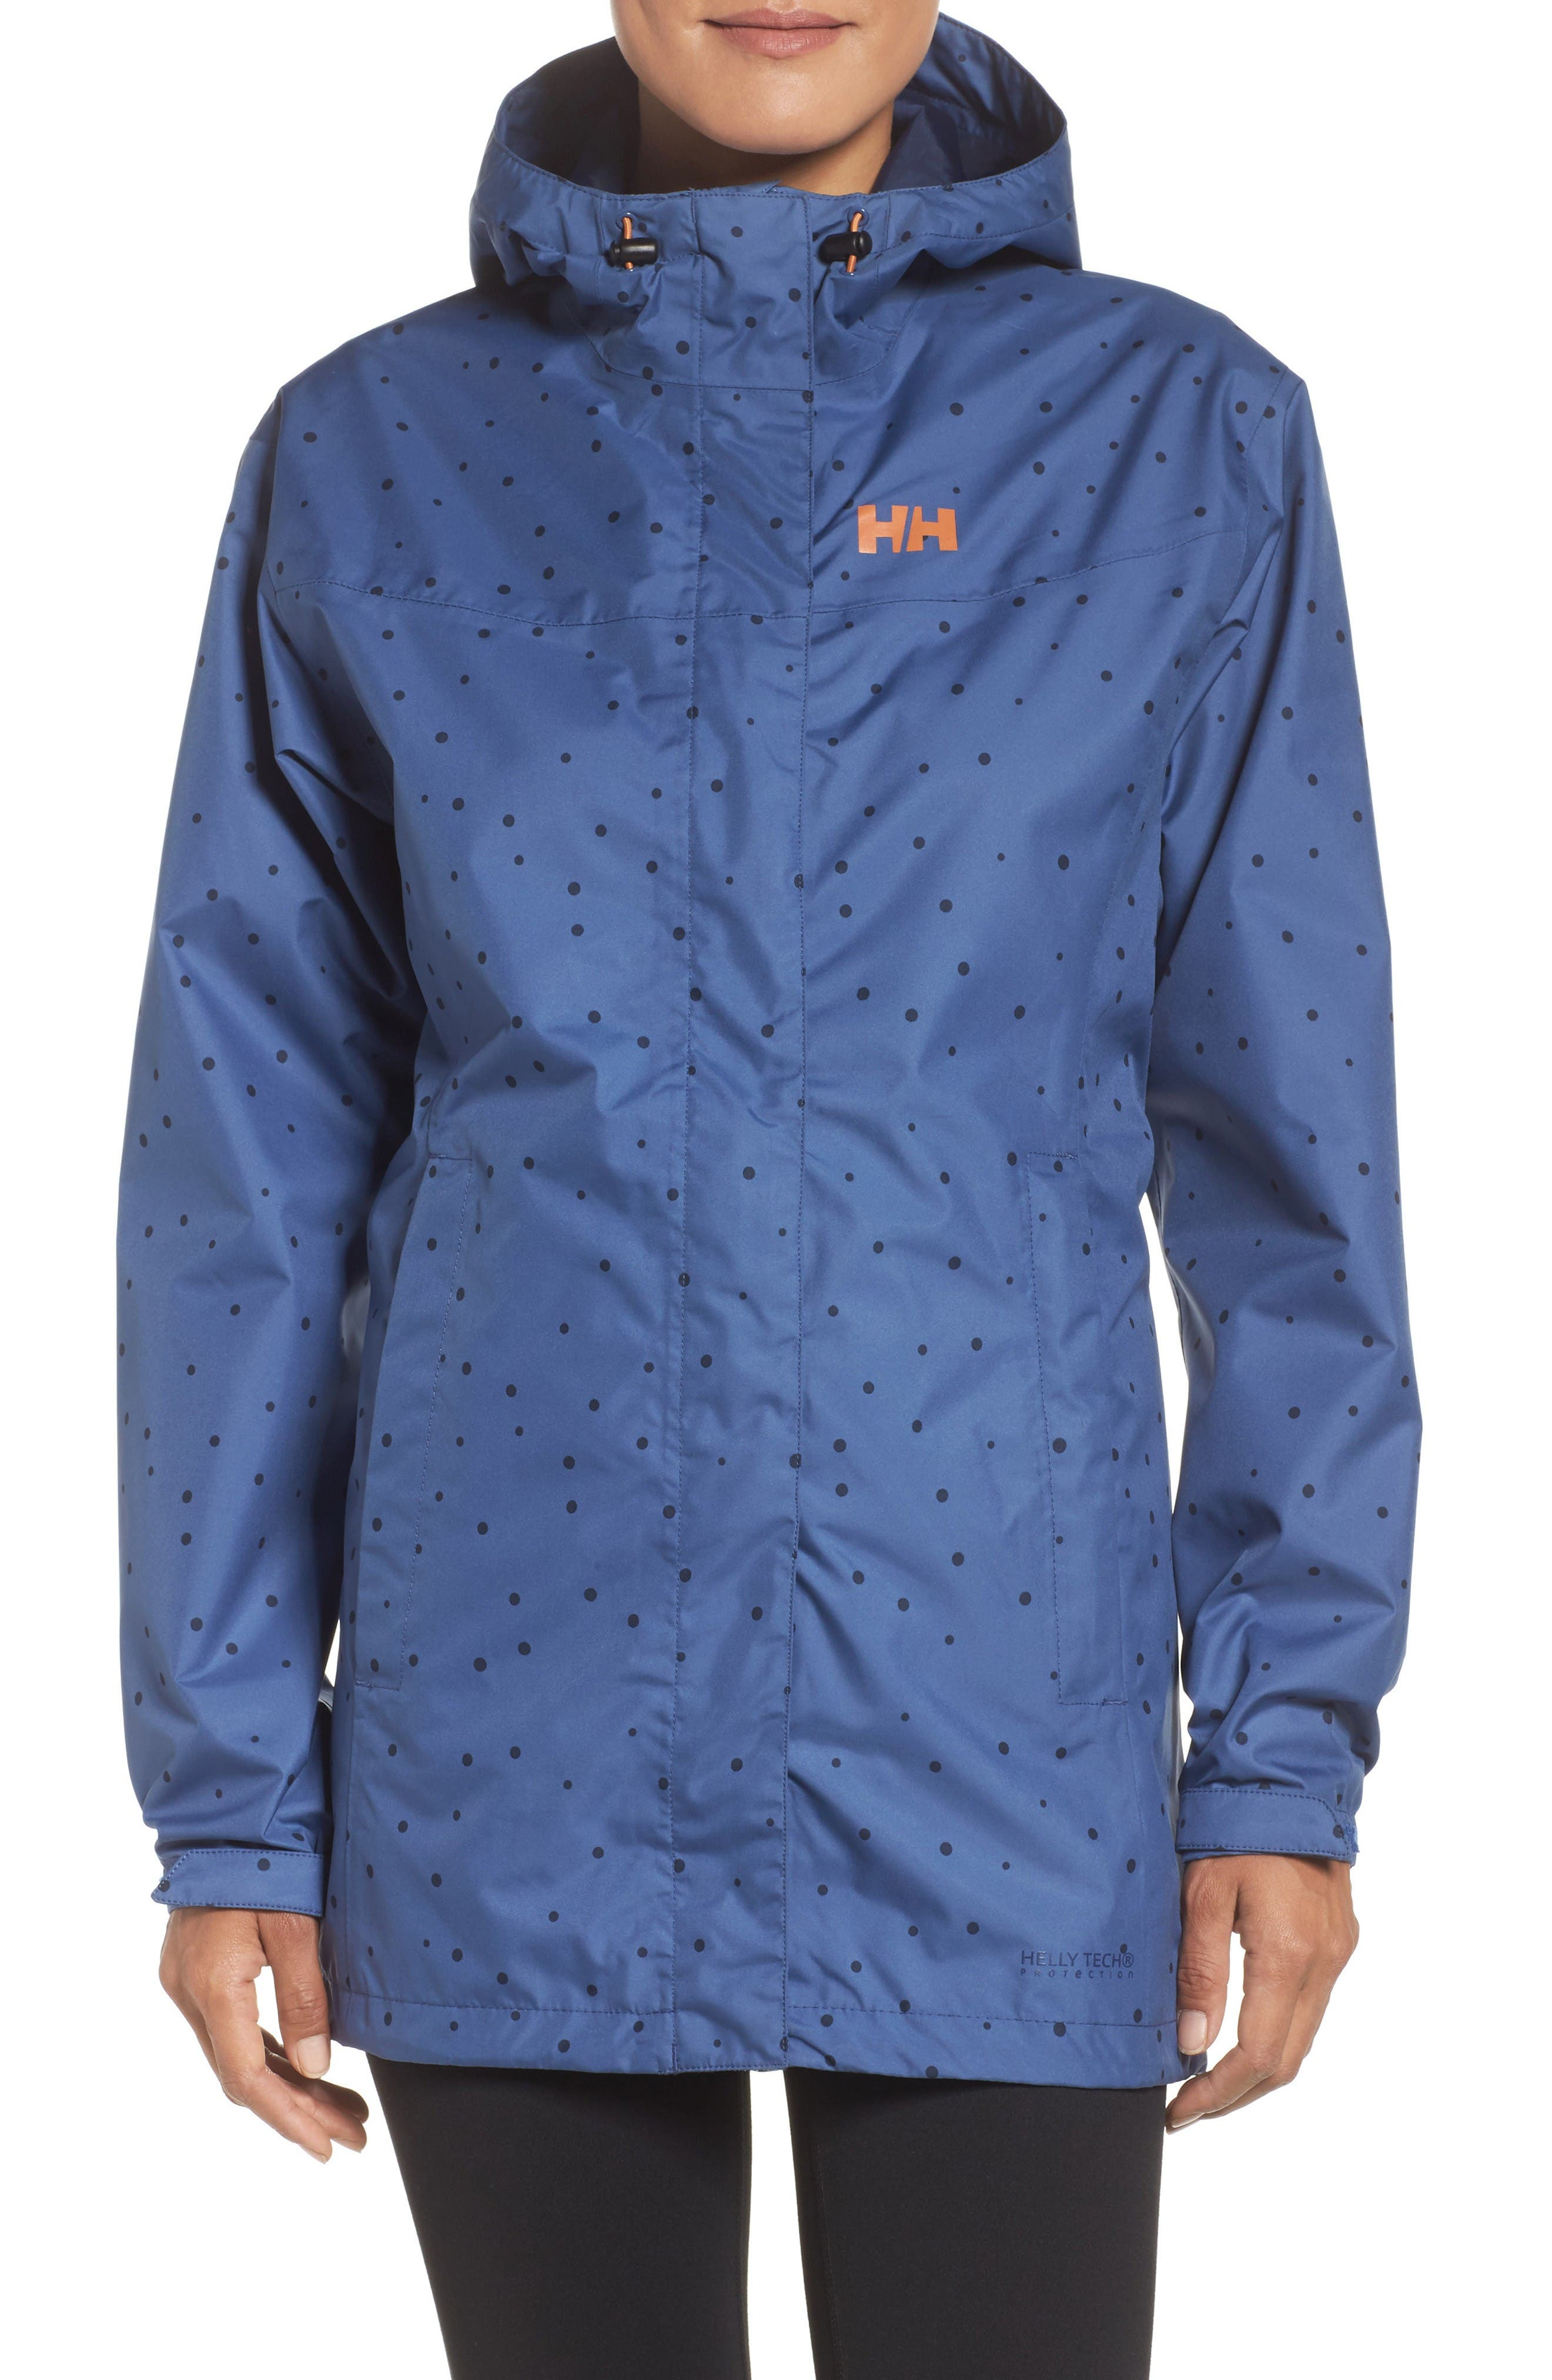 Helly Hansen 'Bellevue' Waterproof Coat